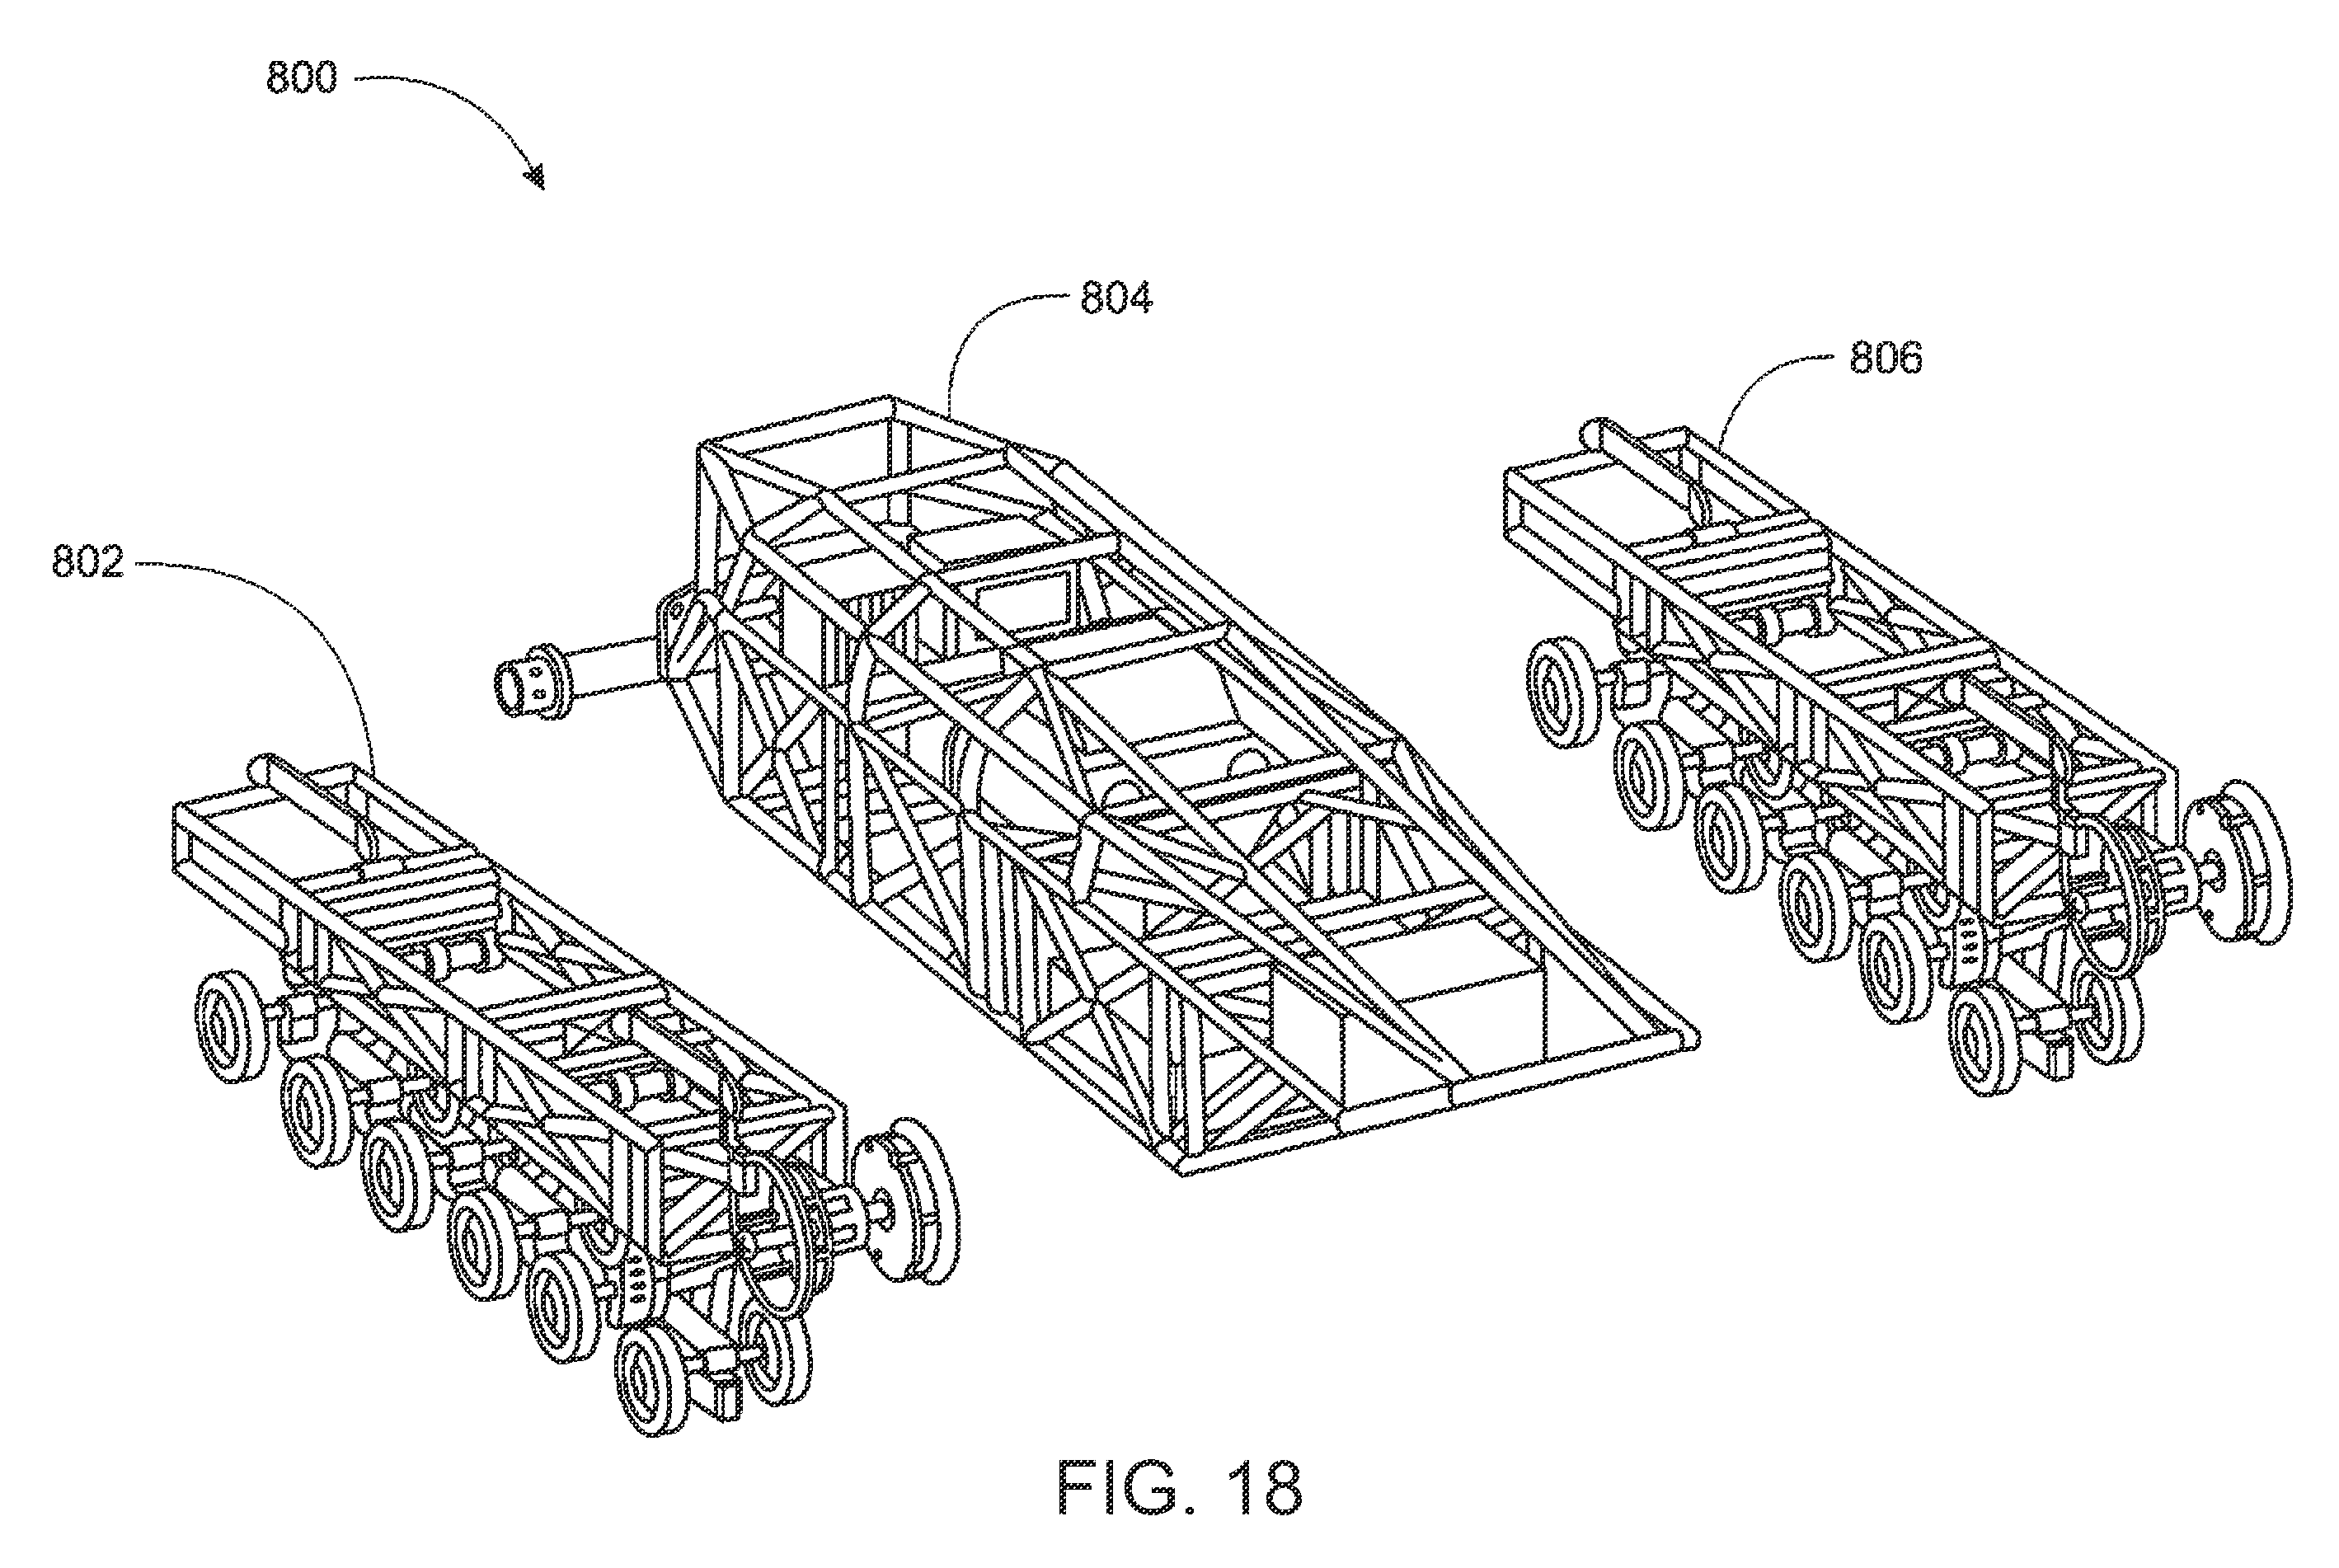 ripsaw sections schematic buggy bike trailer go kart armored vehicles tractors  [ 2837 x 1902 Pixel ]